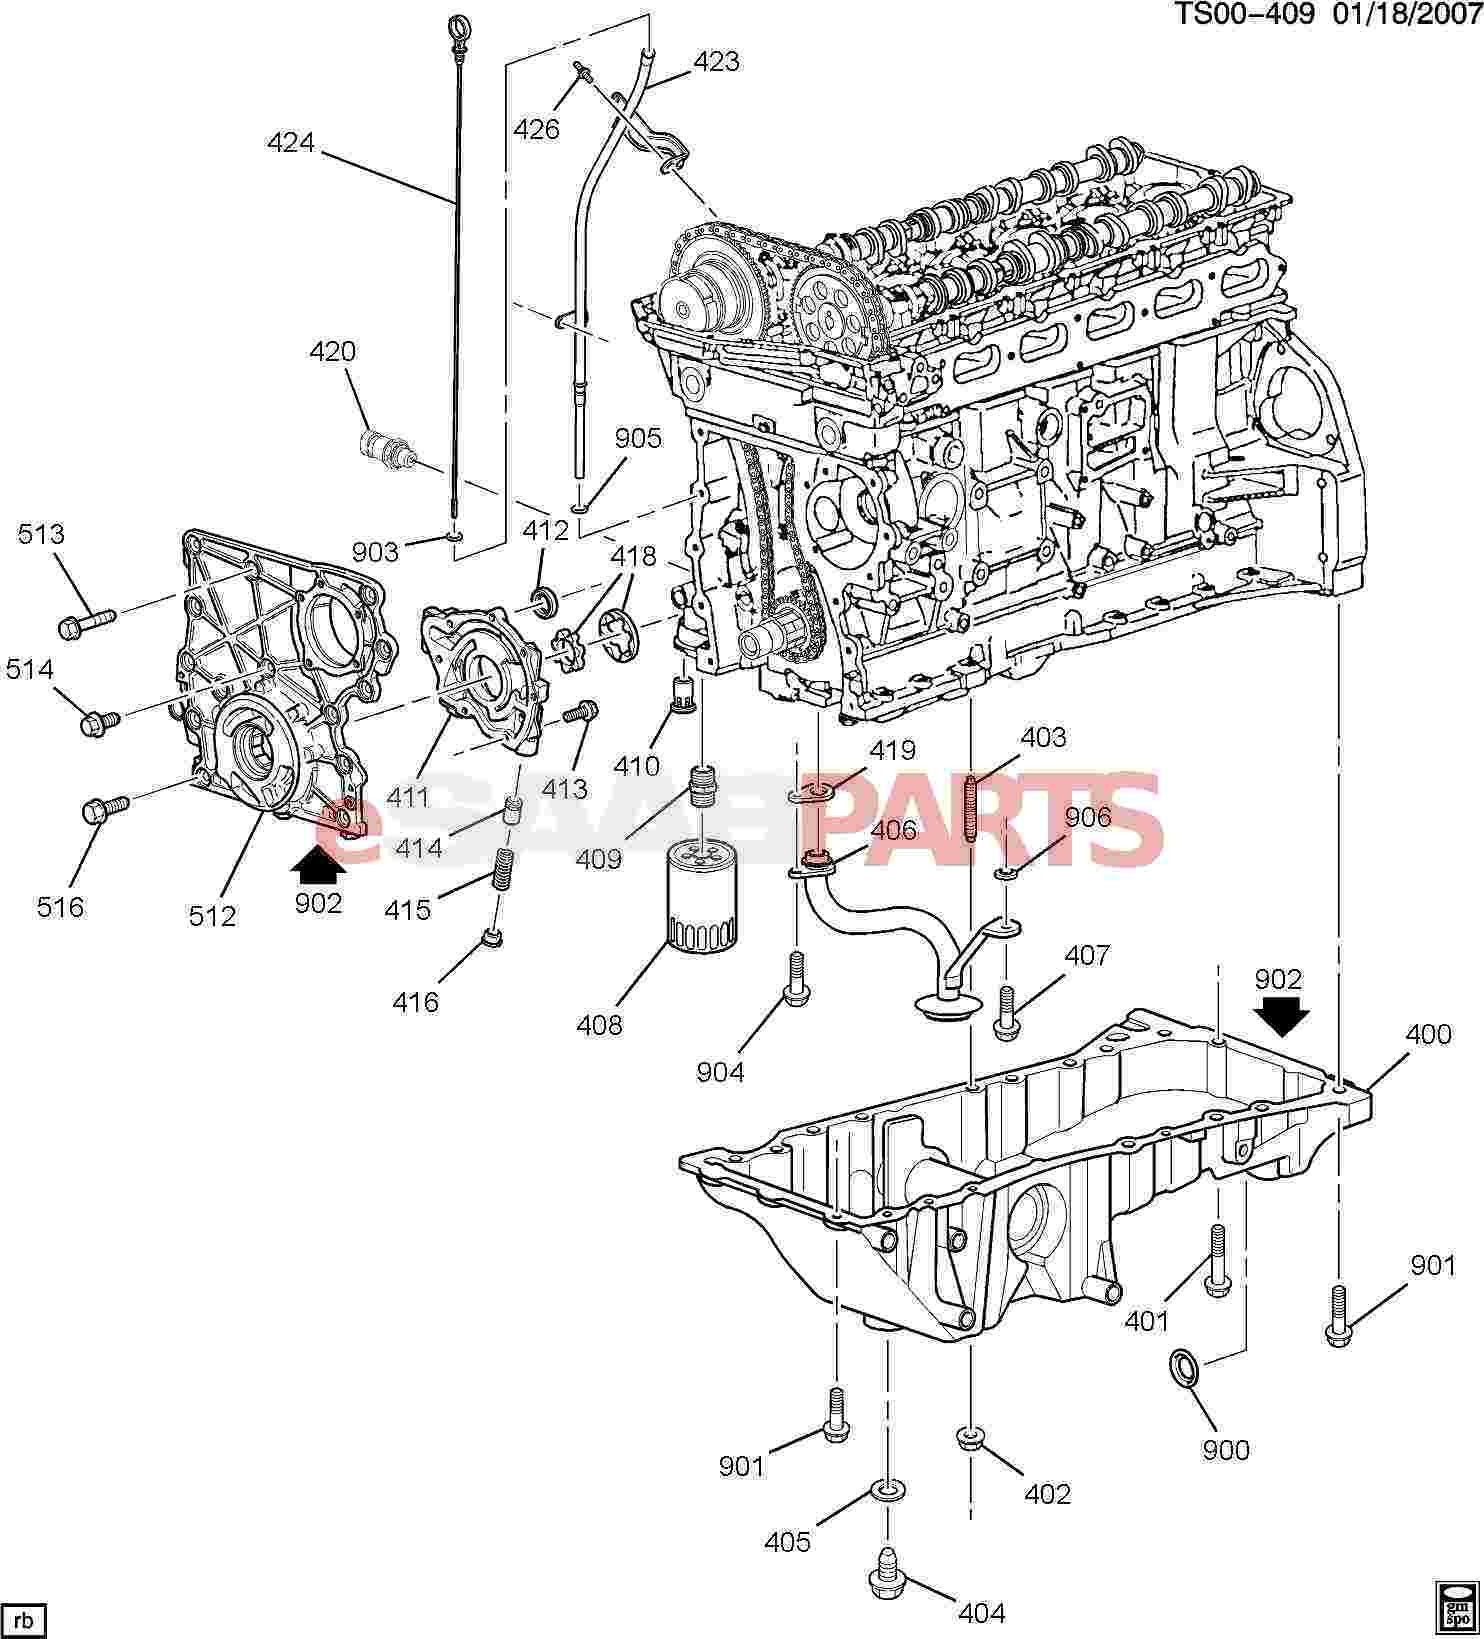 saab oil diagram library of wiring diagram u2022 rh diagramproduct today Saab 9000 Turbo Engine Diagram Saab 9000 Turbo Engine Diagram